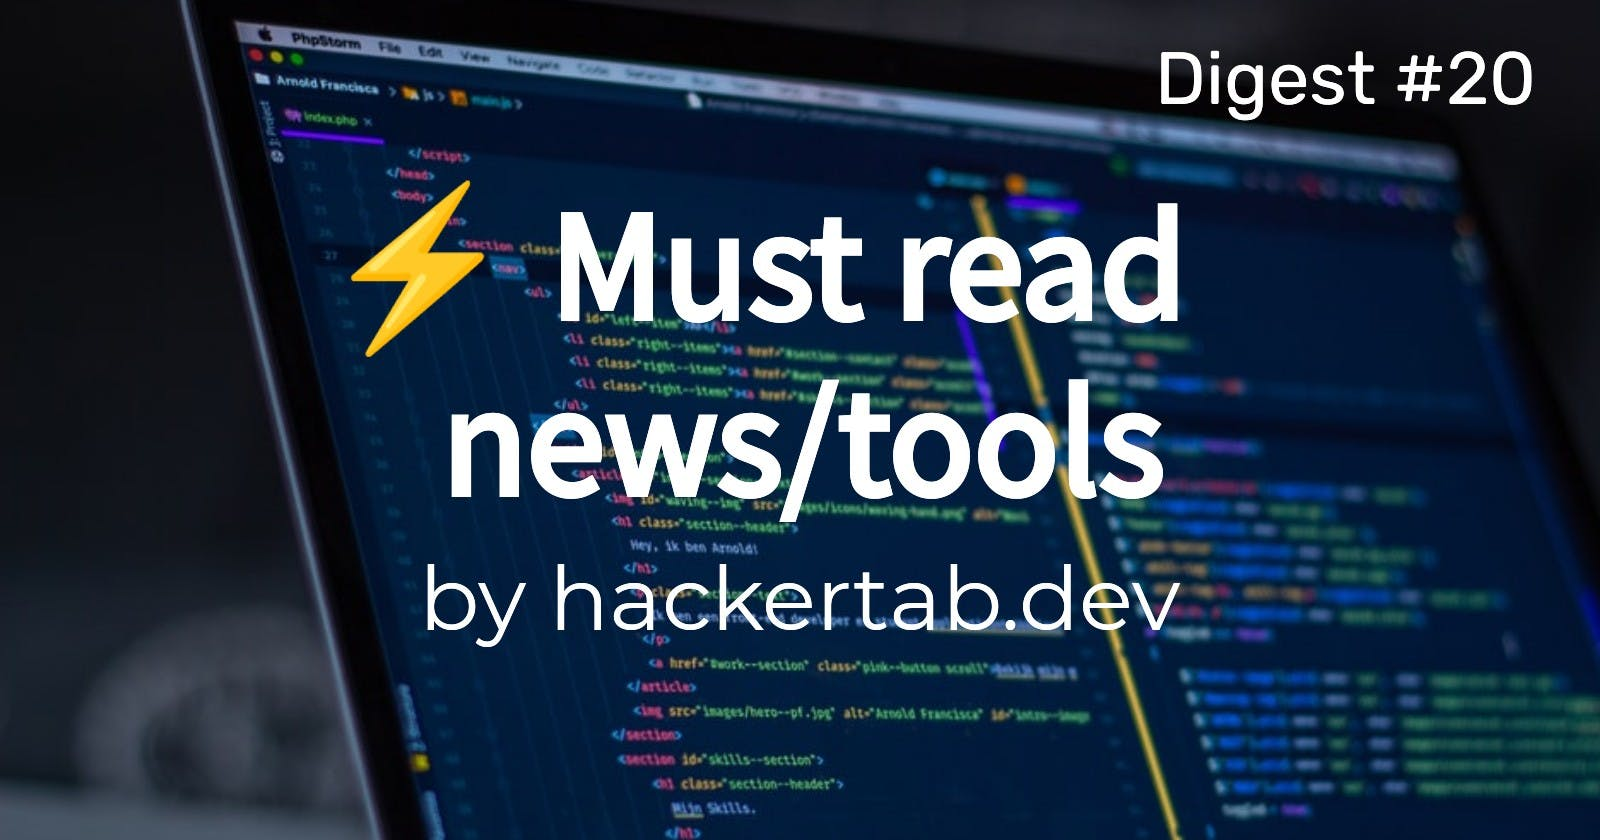 ⚡ Must read Tech news/tools of the day - Digest #20